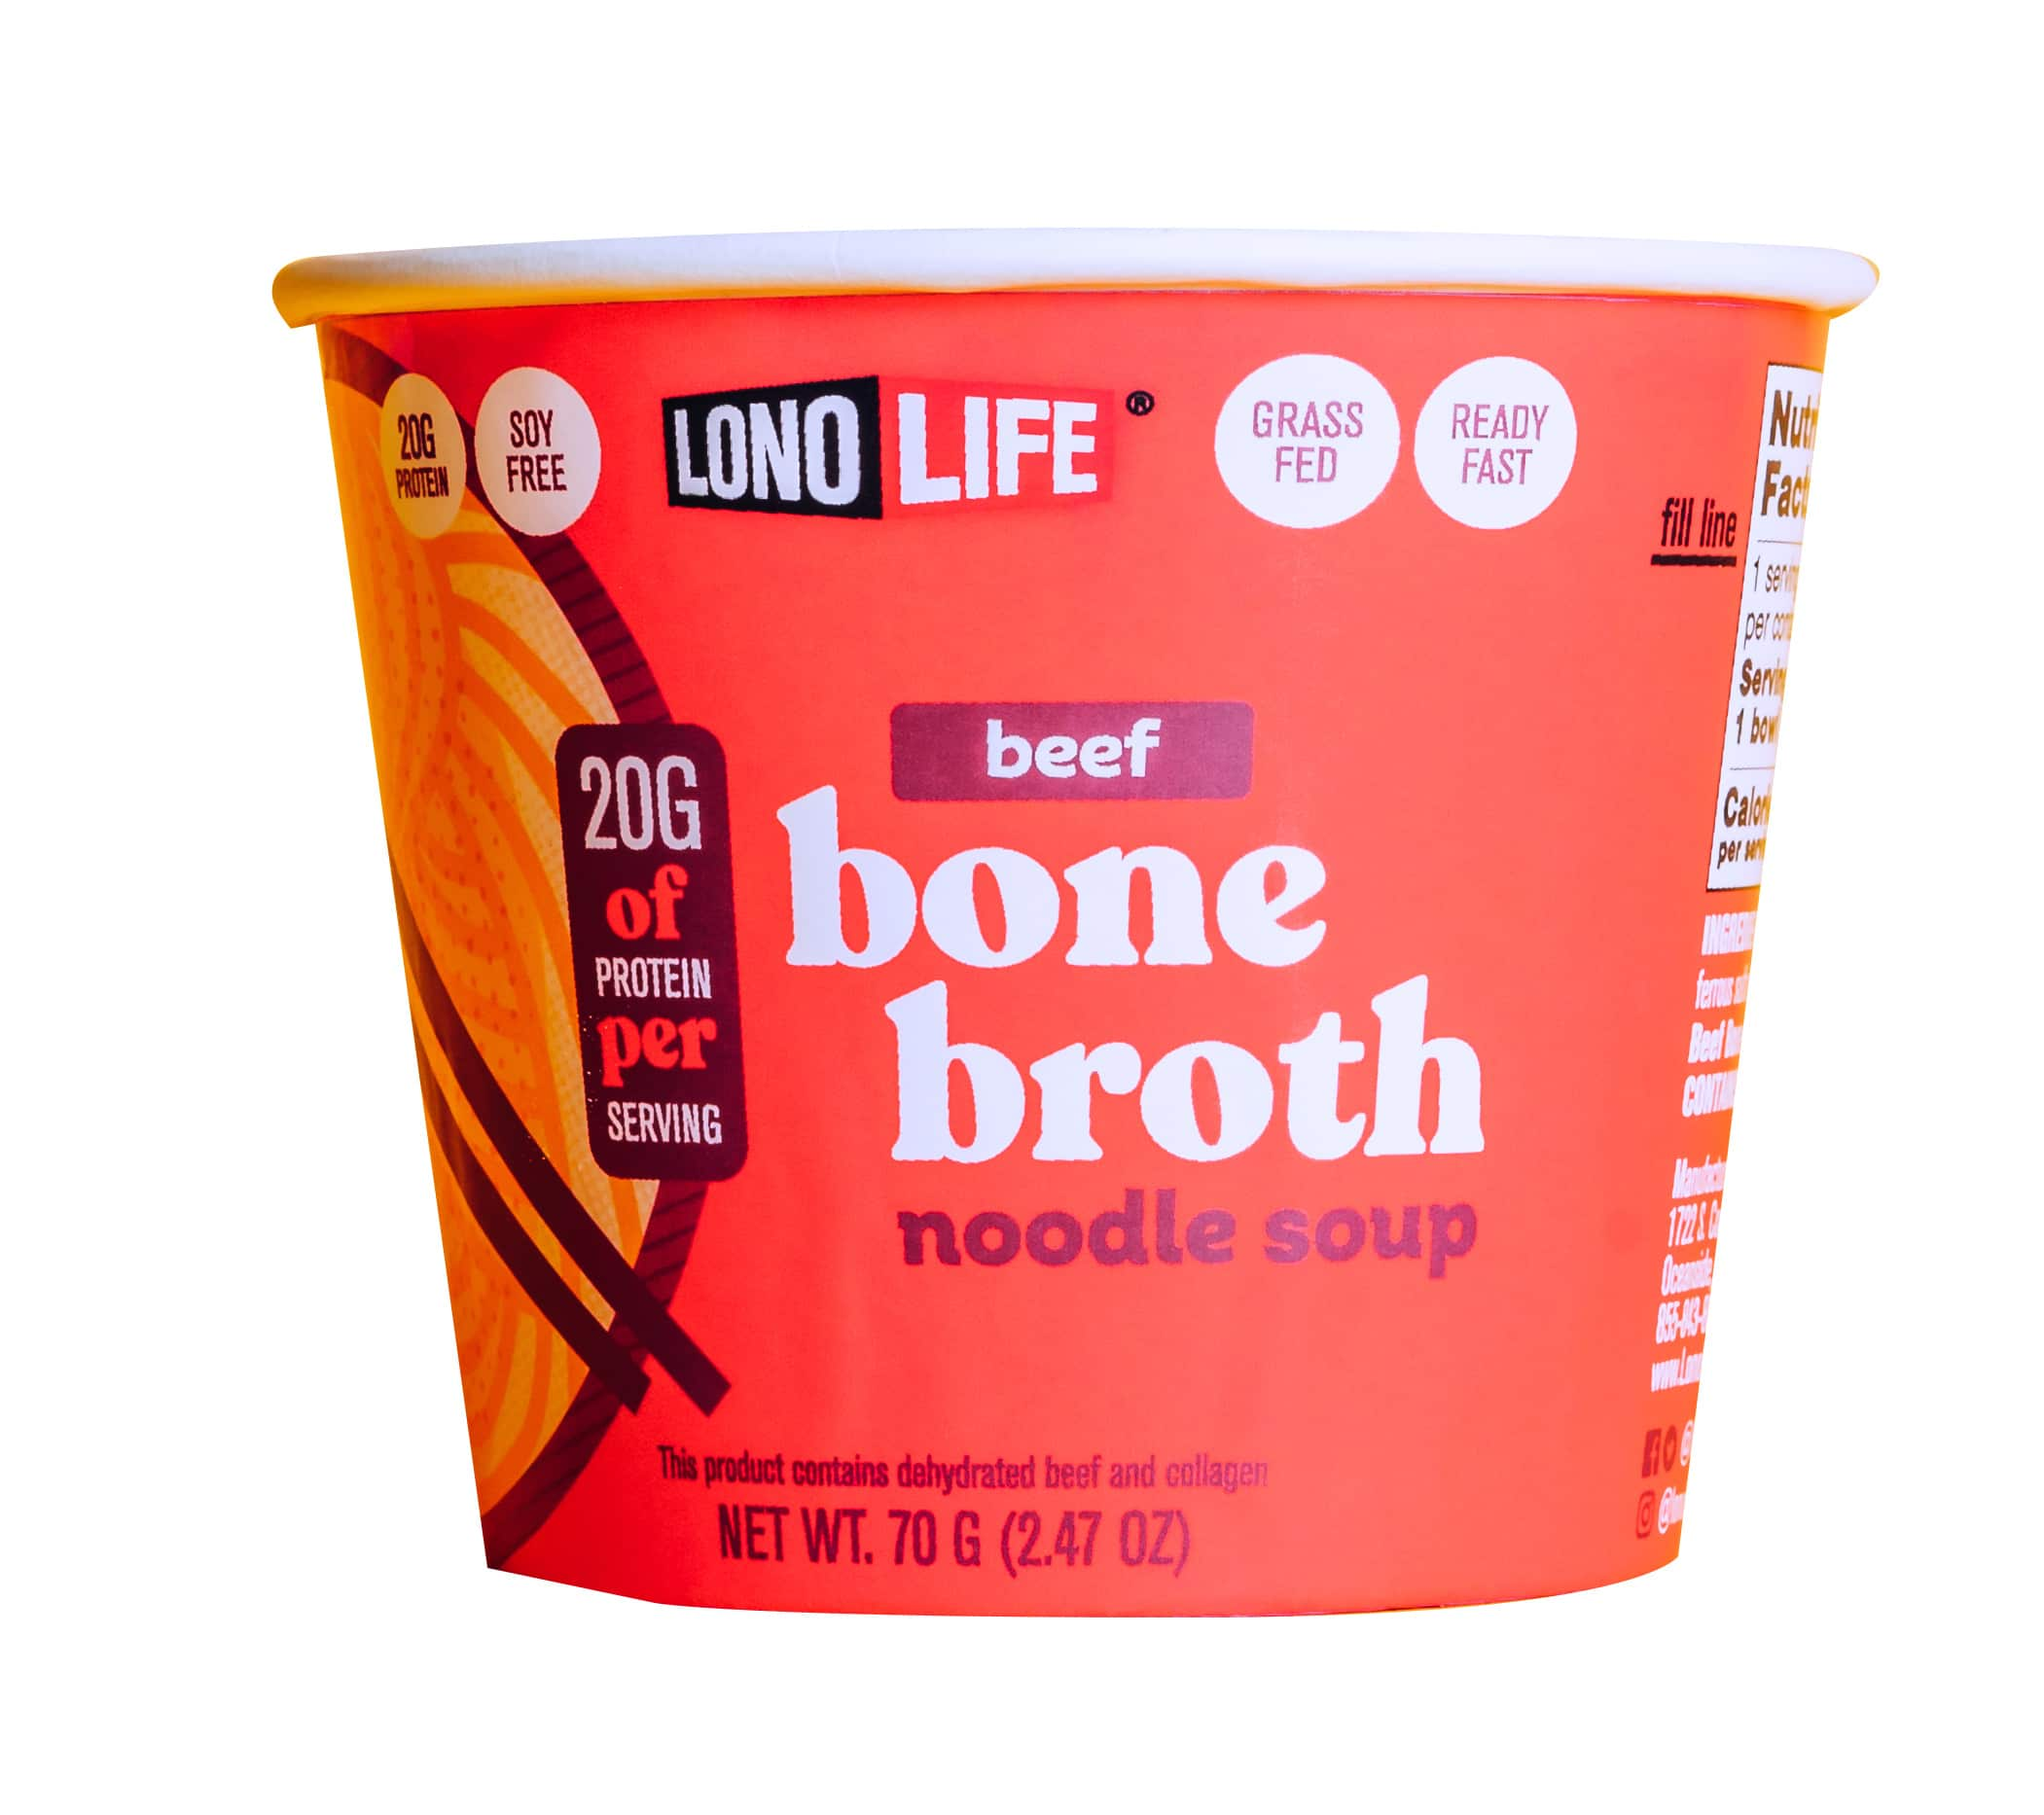 LonoLife Launches New Bone Broth Noodle Soups